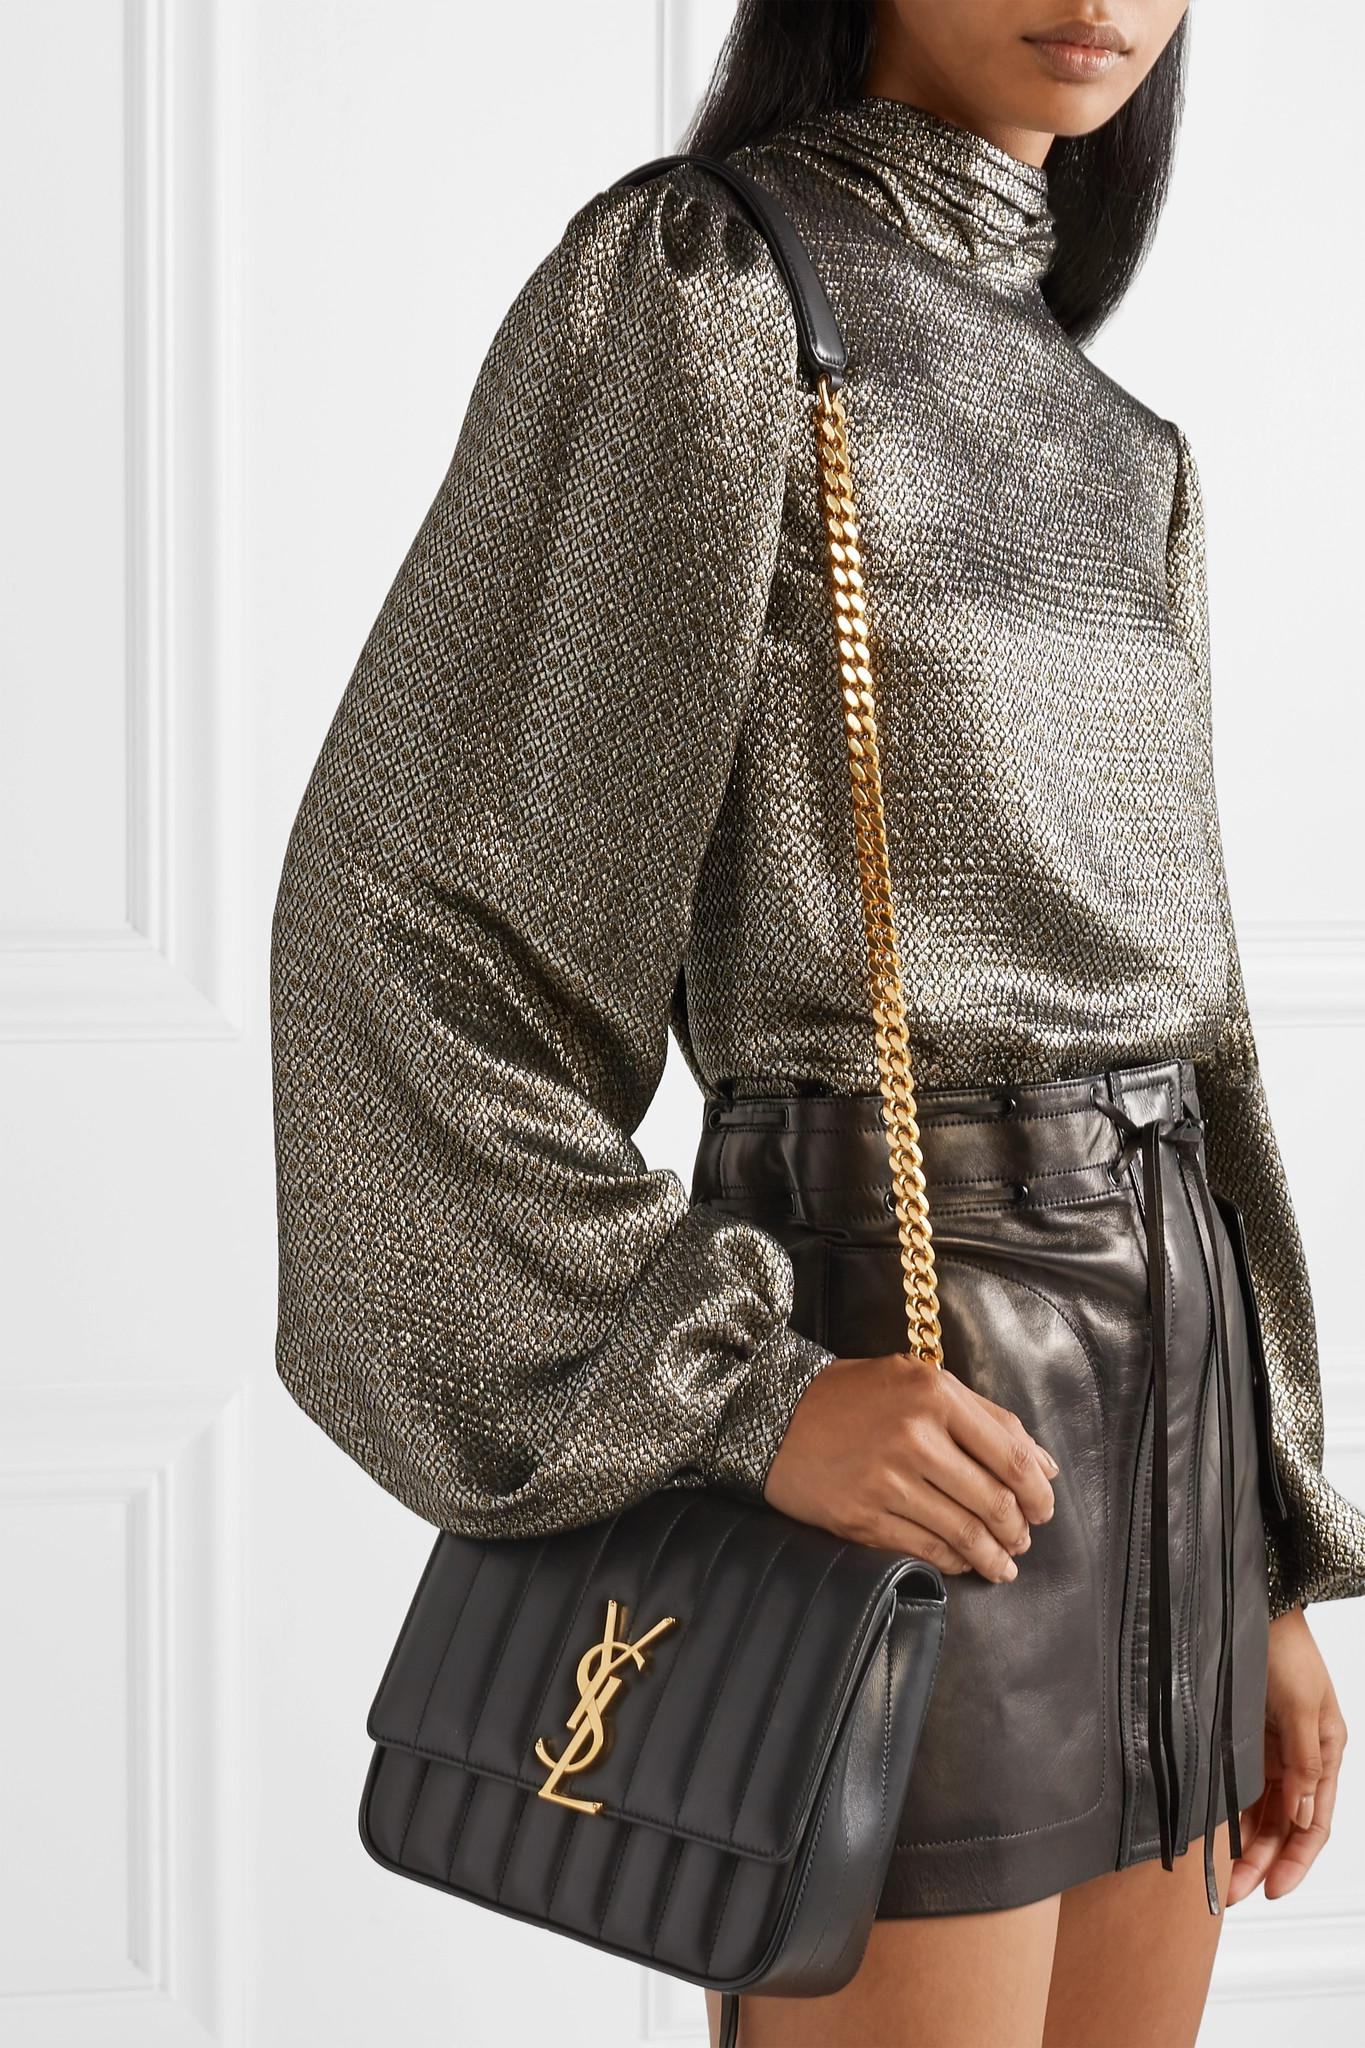 33aa65941242 Saint Laurent - Black Vicky Medium Quilted Leather Shoulder Bag - Lyst.  View fullscreen